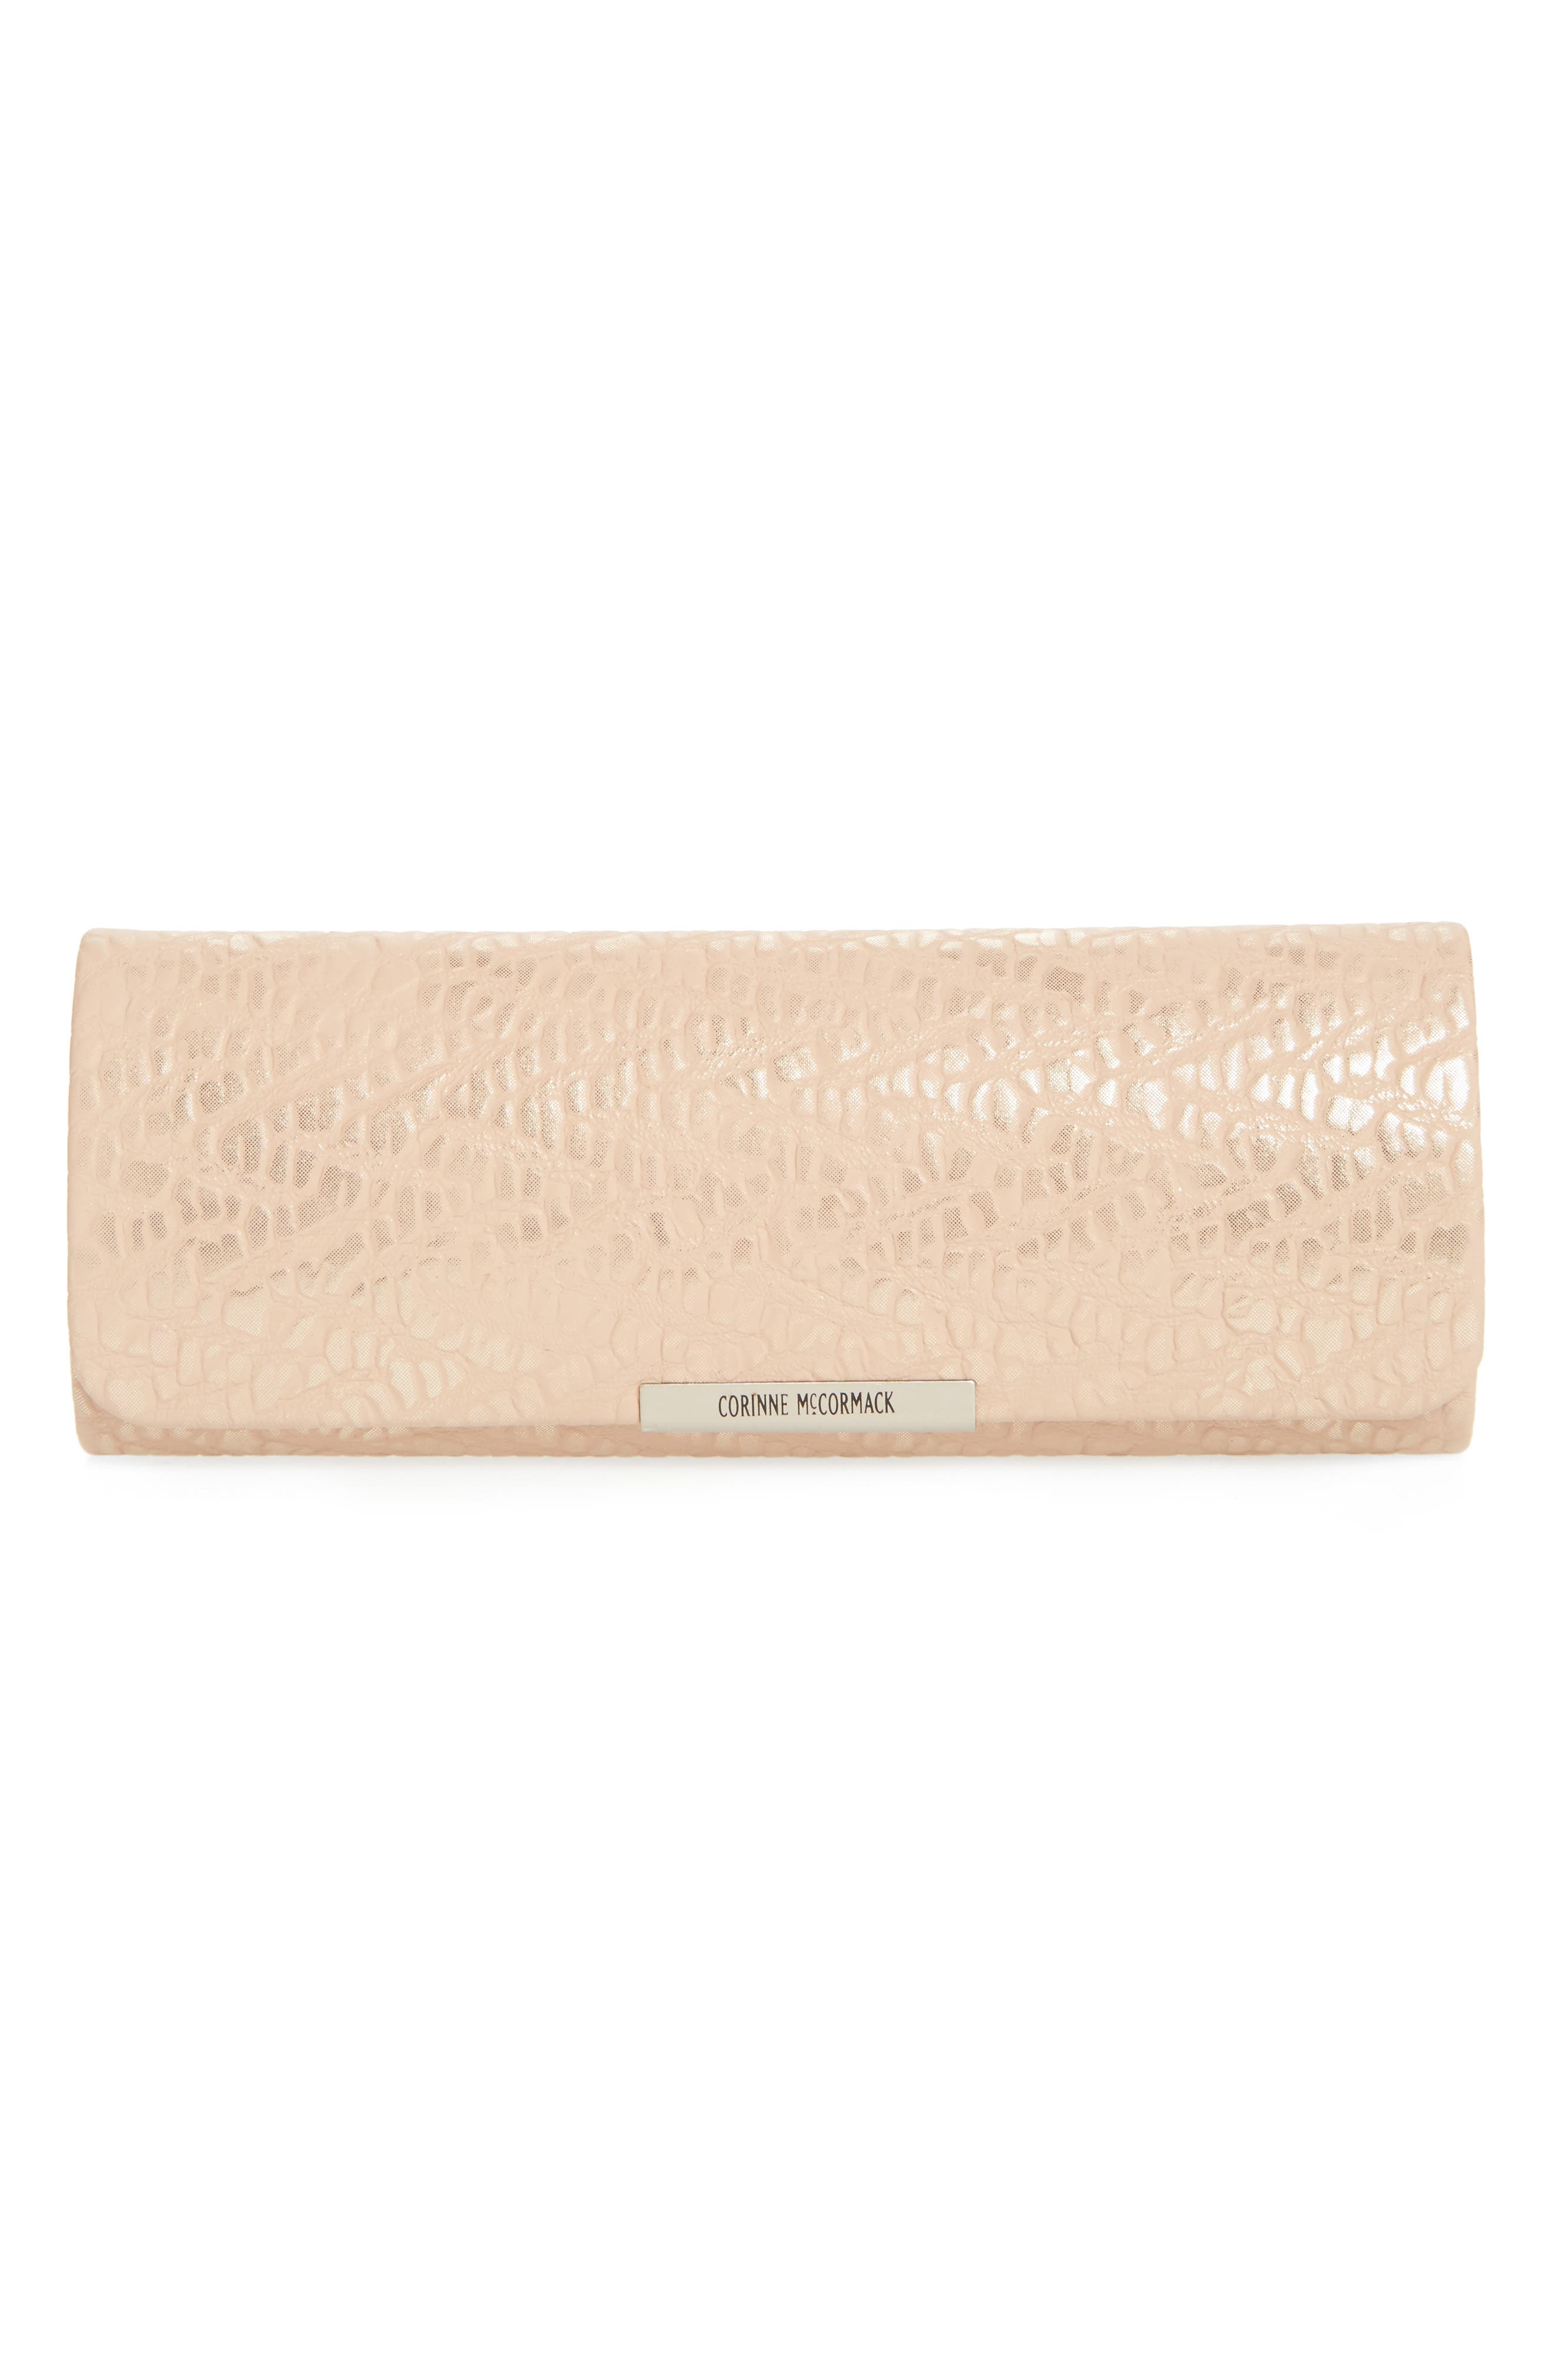 Main Image - Corinne McCormack Oval Reading Glasses Case